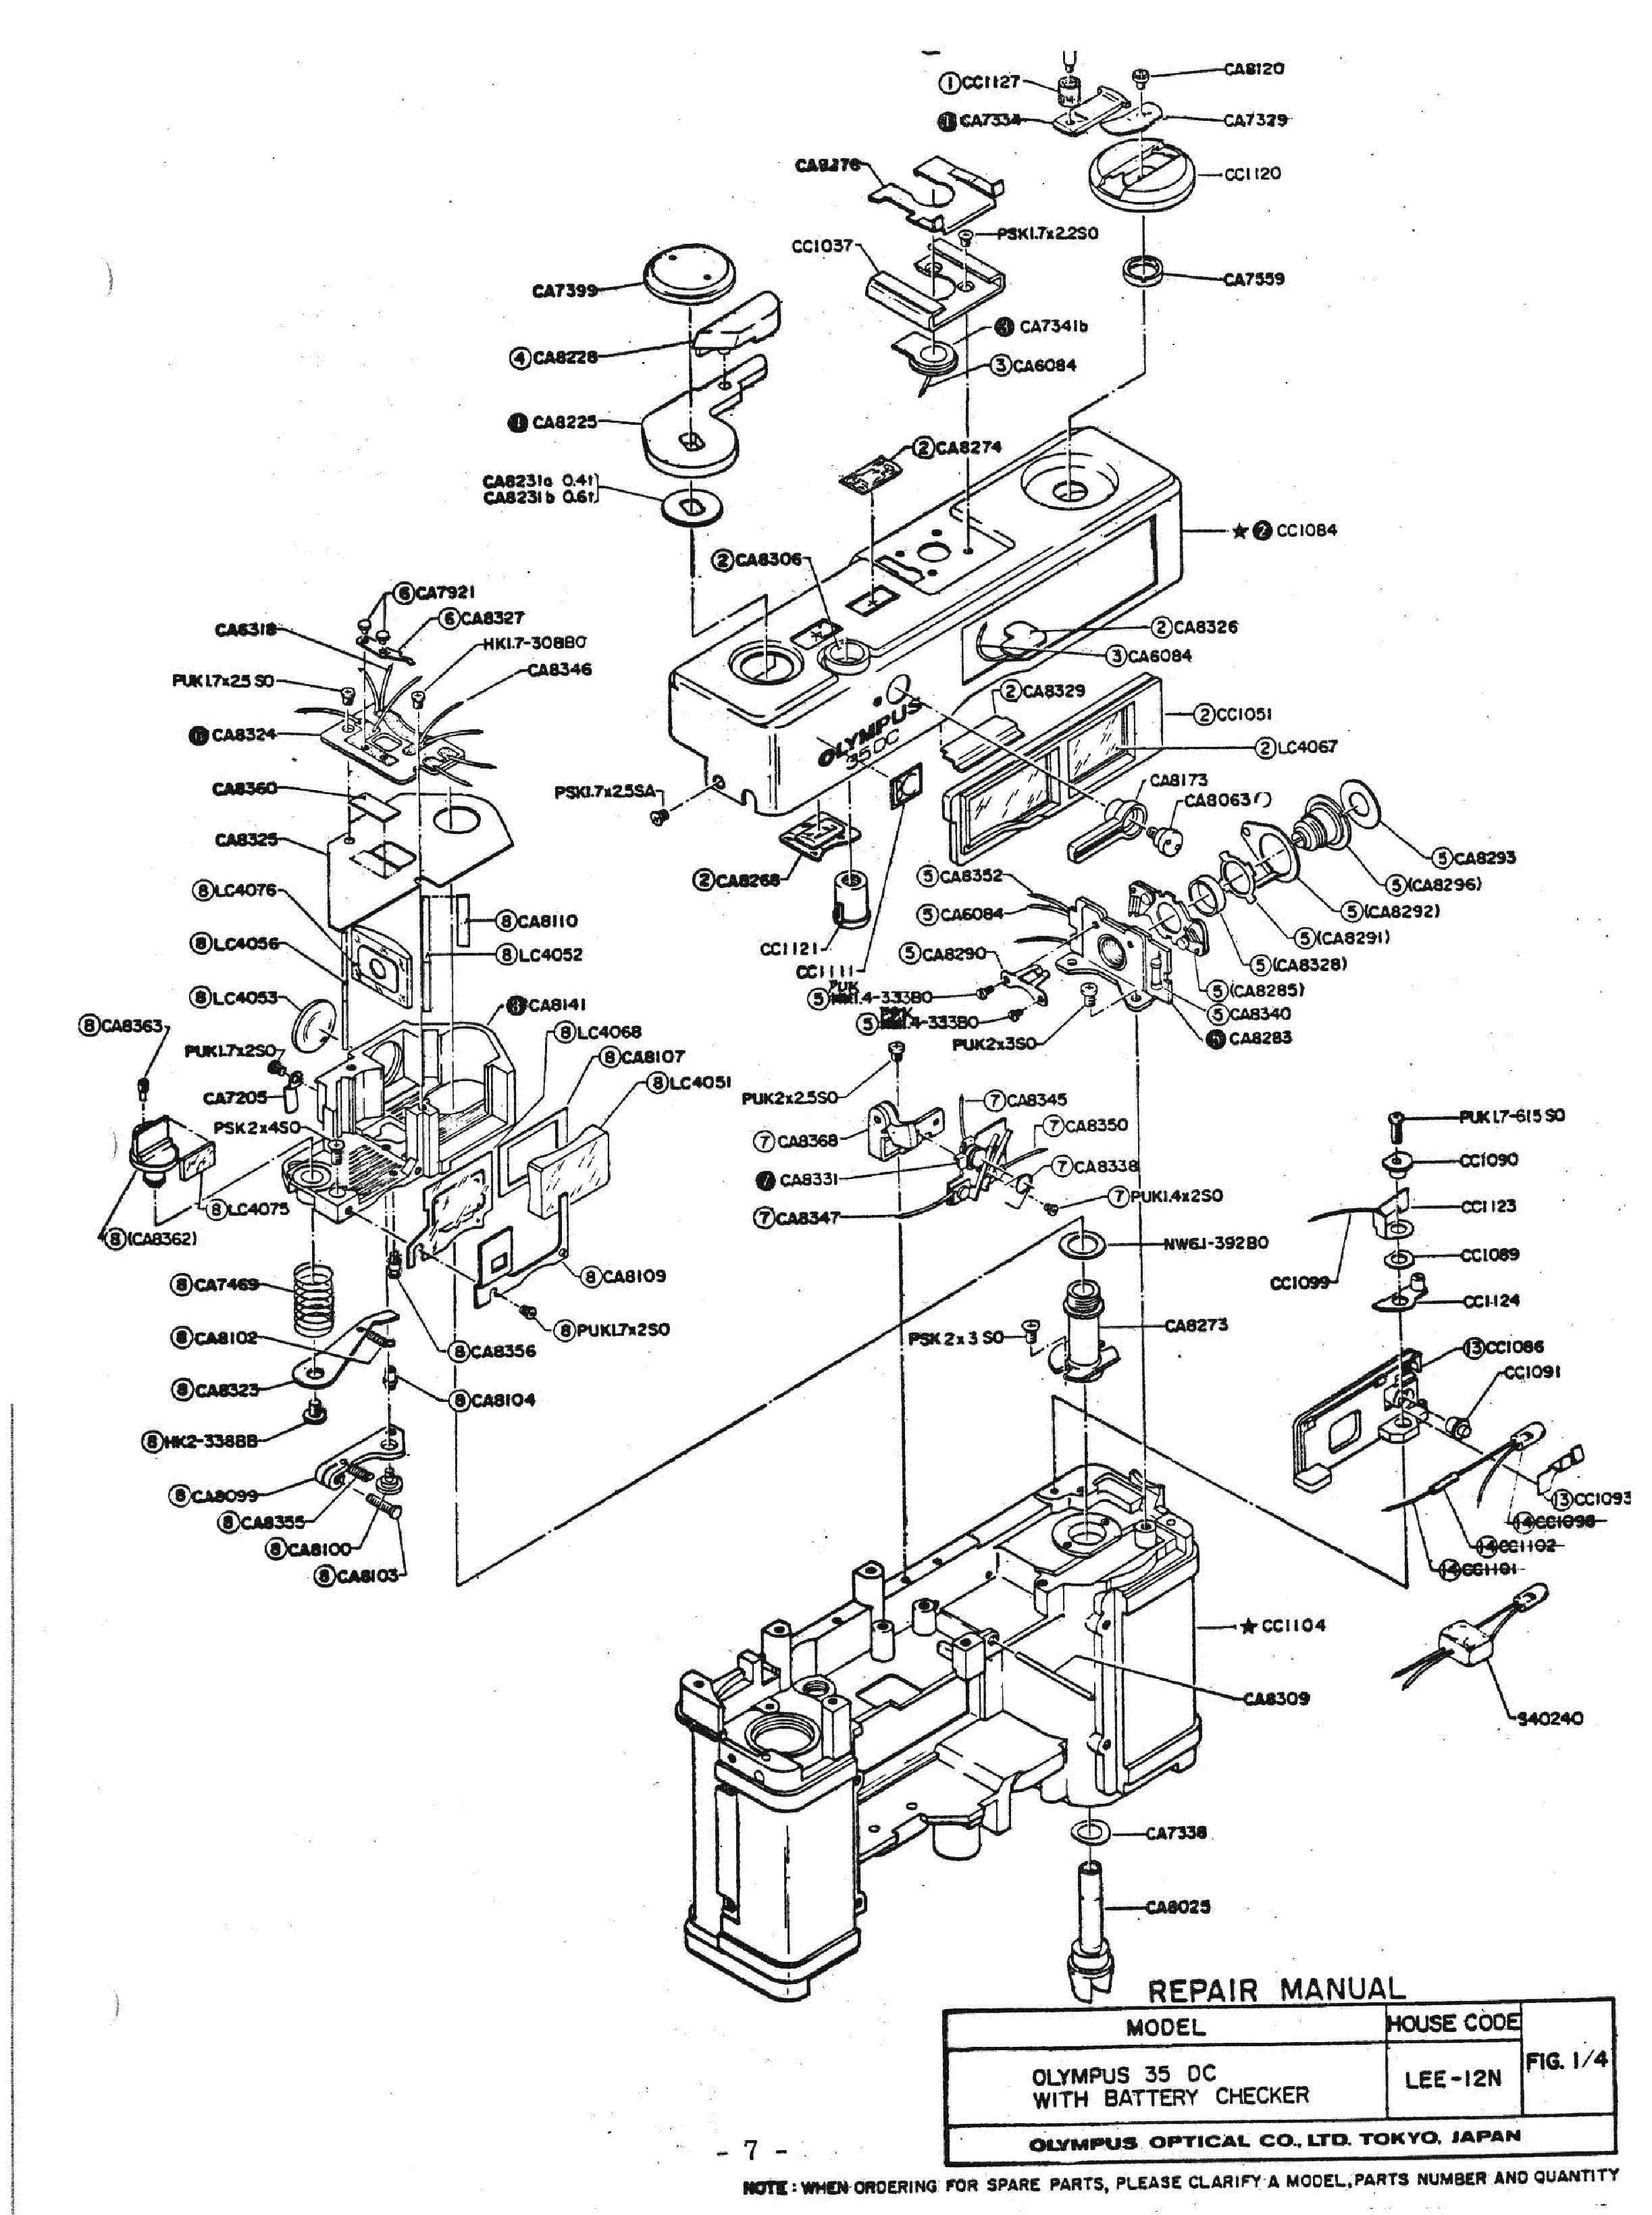 olympus 35dc exploded parts diagram service manual download  schematics  eeprom  repair info for